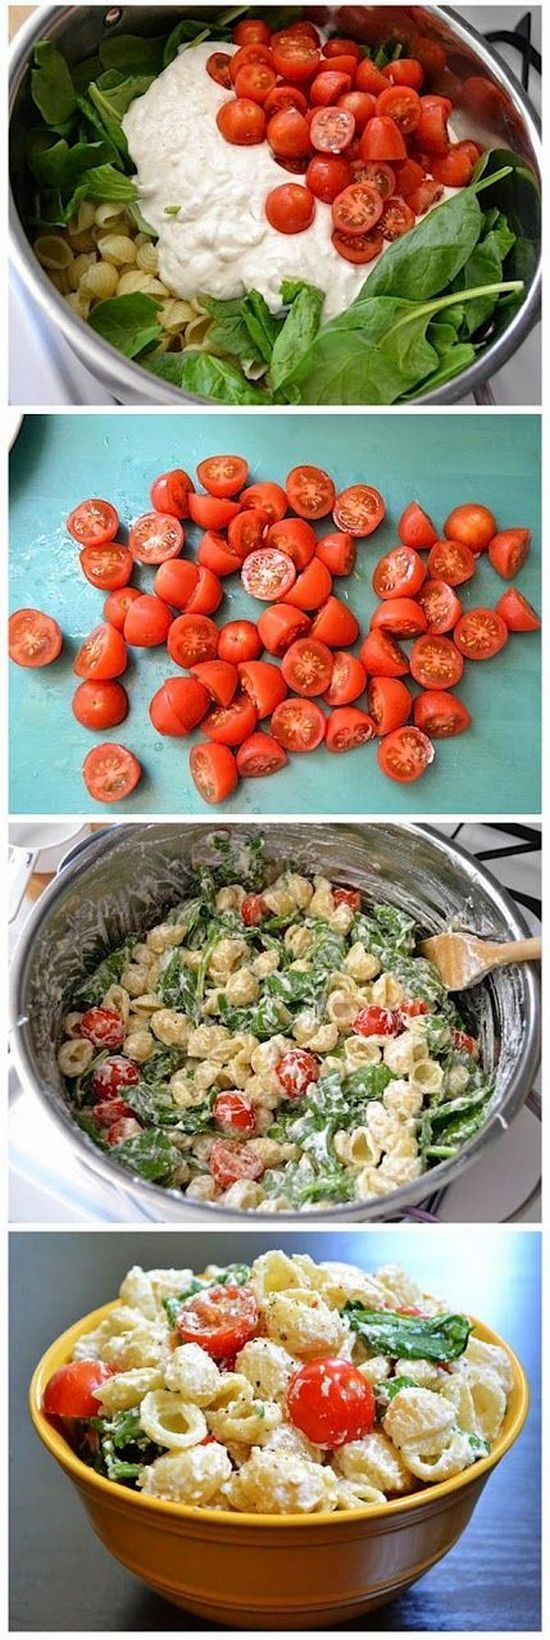 Roasted Garlic Pasta Salad [ BobaluBerries.com ] #lunch #gourmet #berries